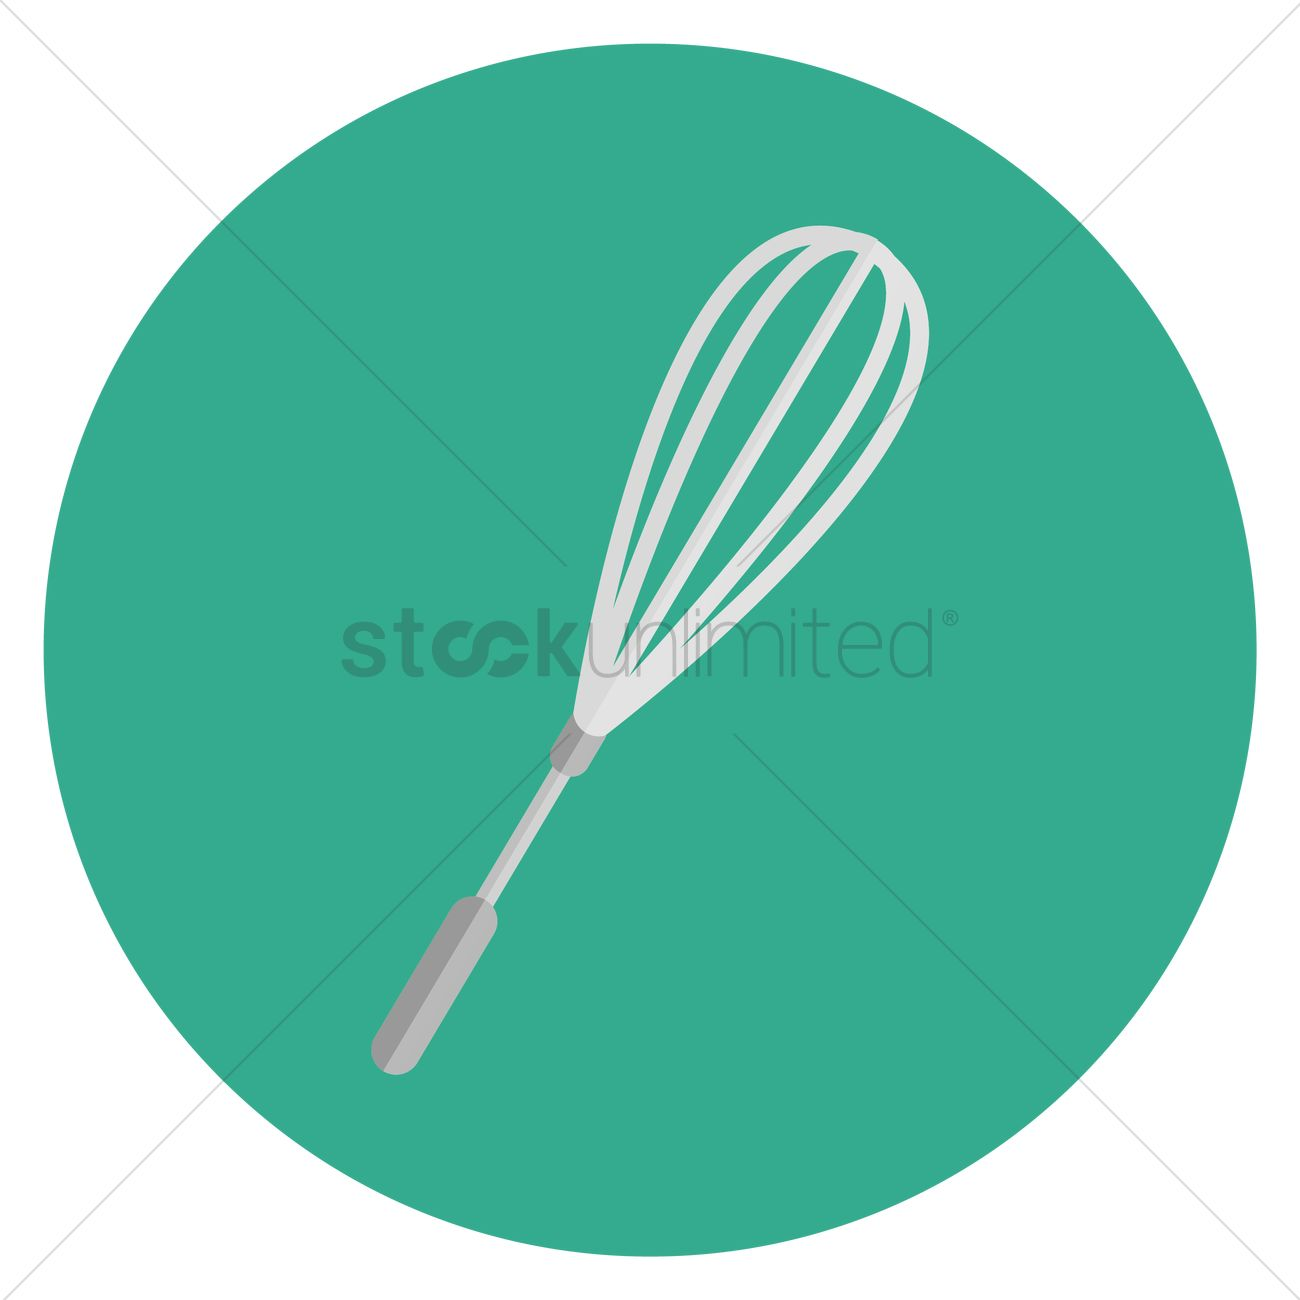 A whisk icon Vector Image - 1260200   StockUnlimited